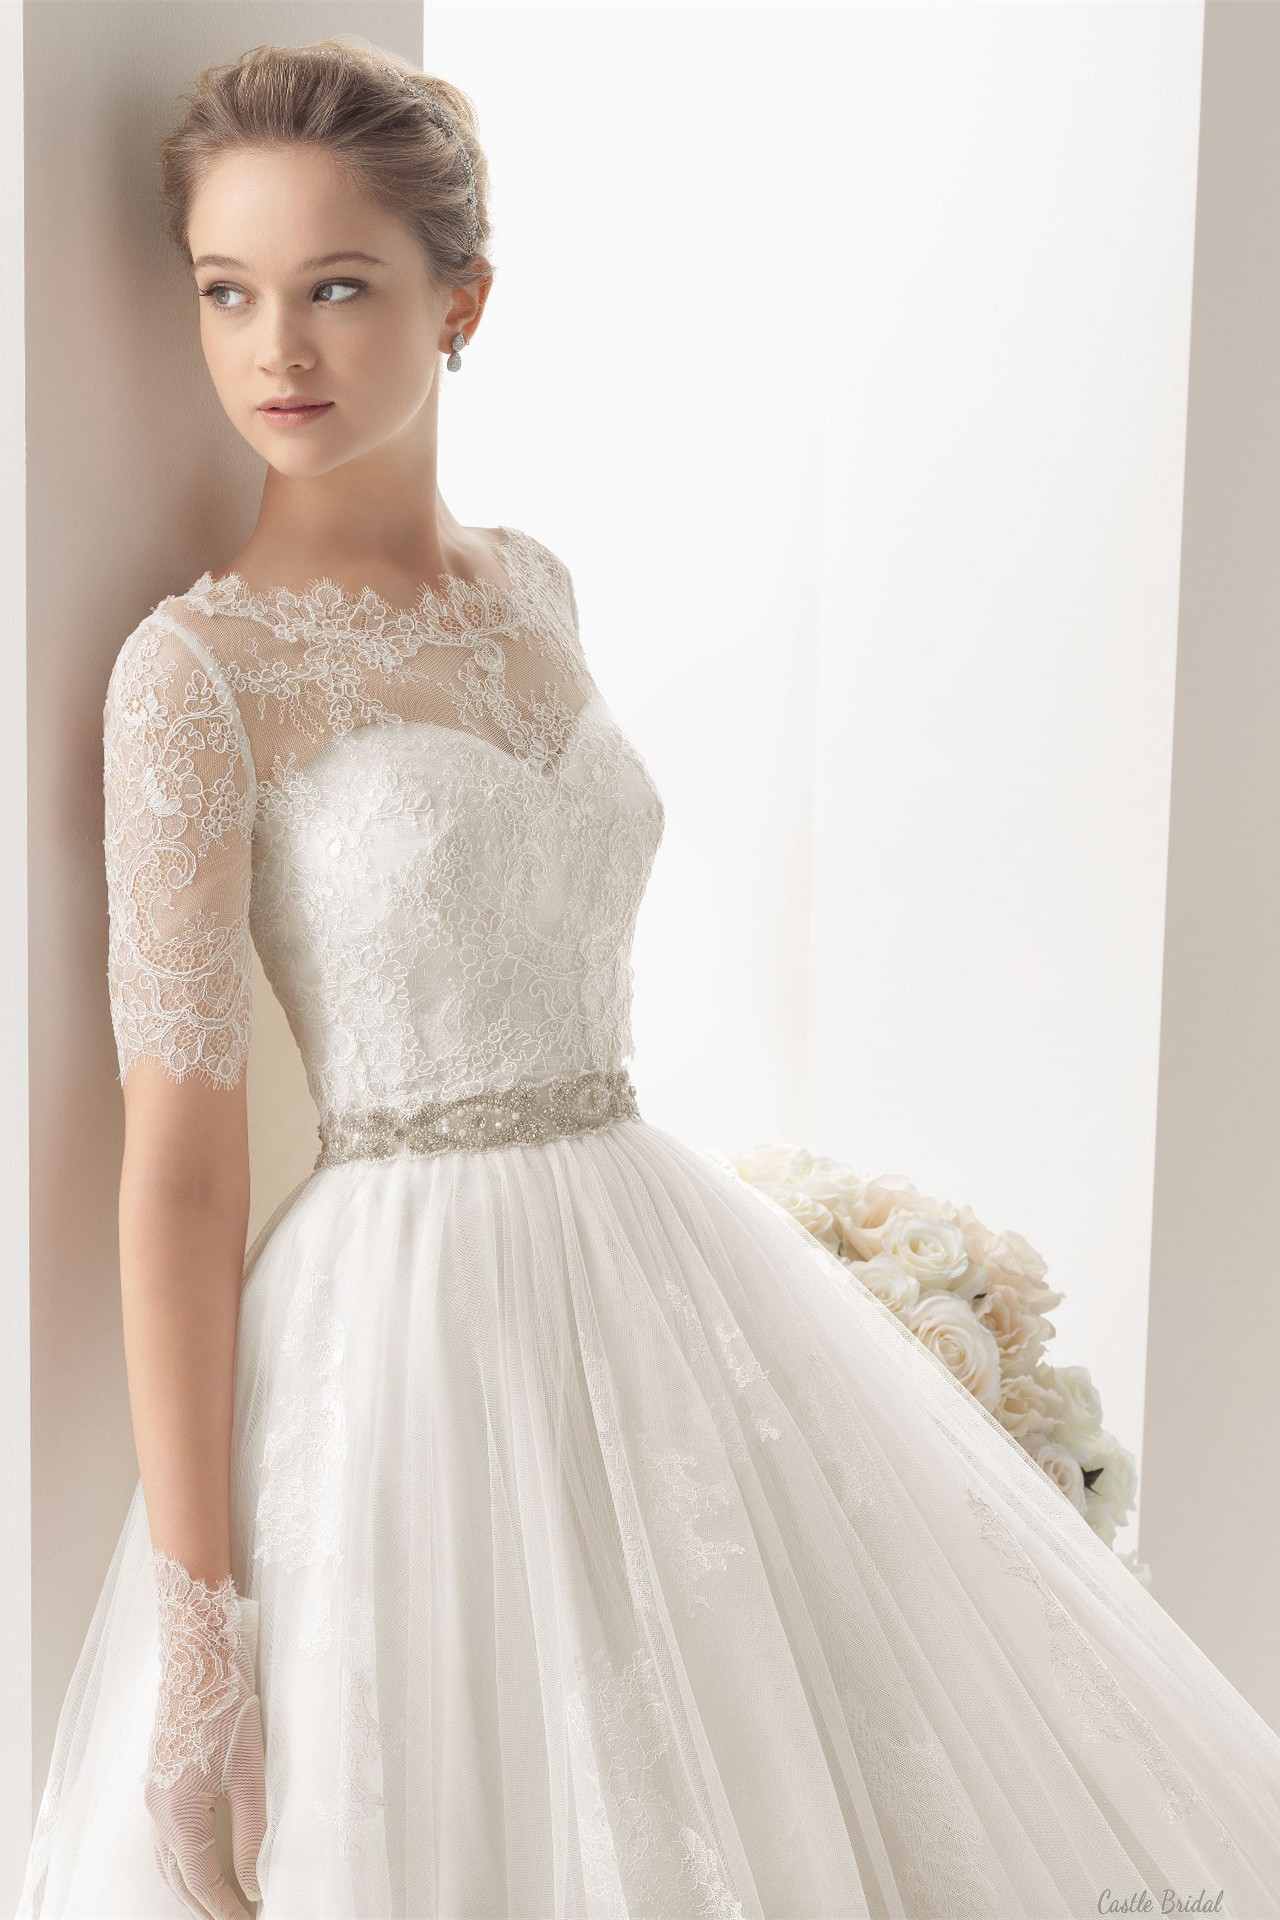 Lace Appliques Beading Belt Wedding Dress | Visual.ly